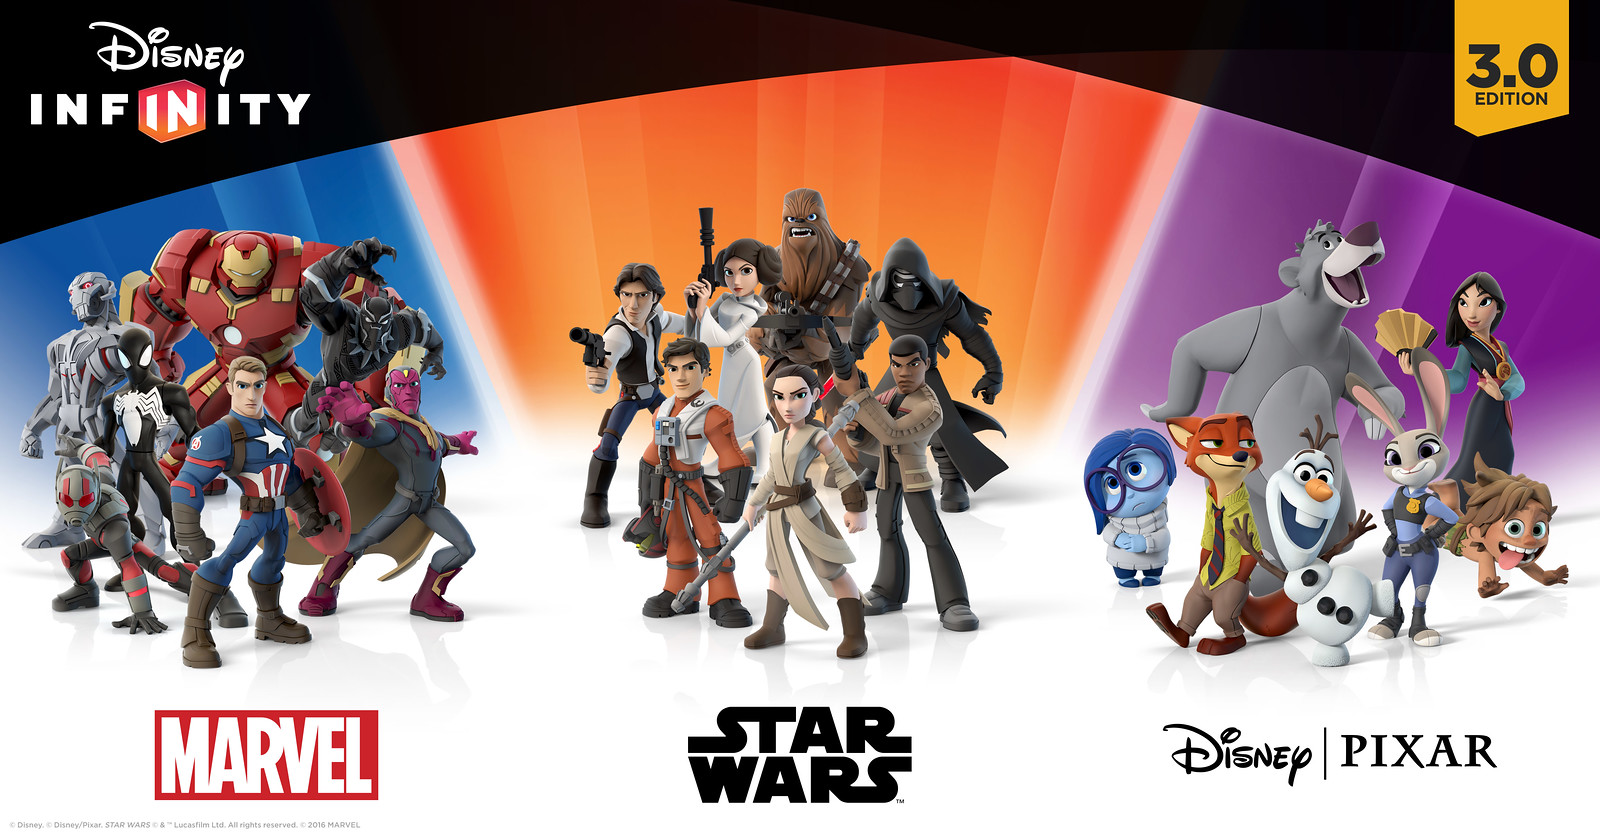 Disney Infinity designers explain why we don't need 4 0 and